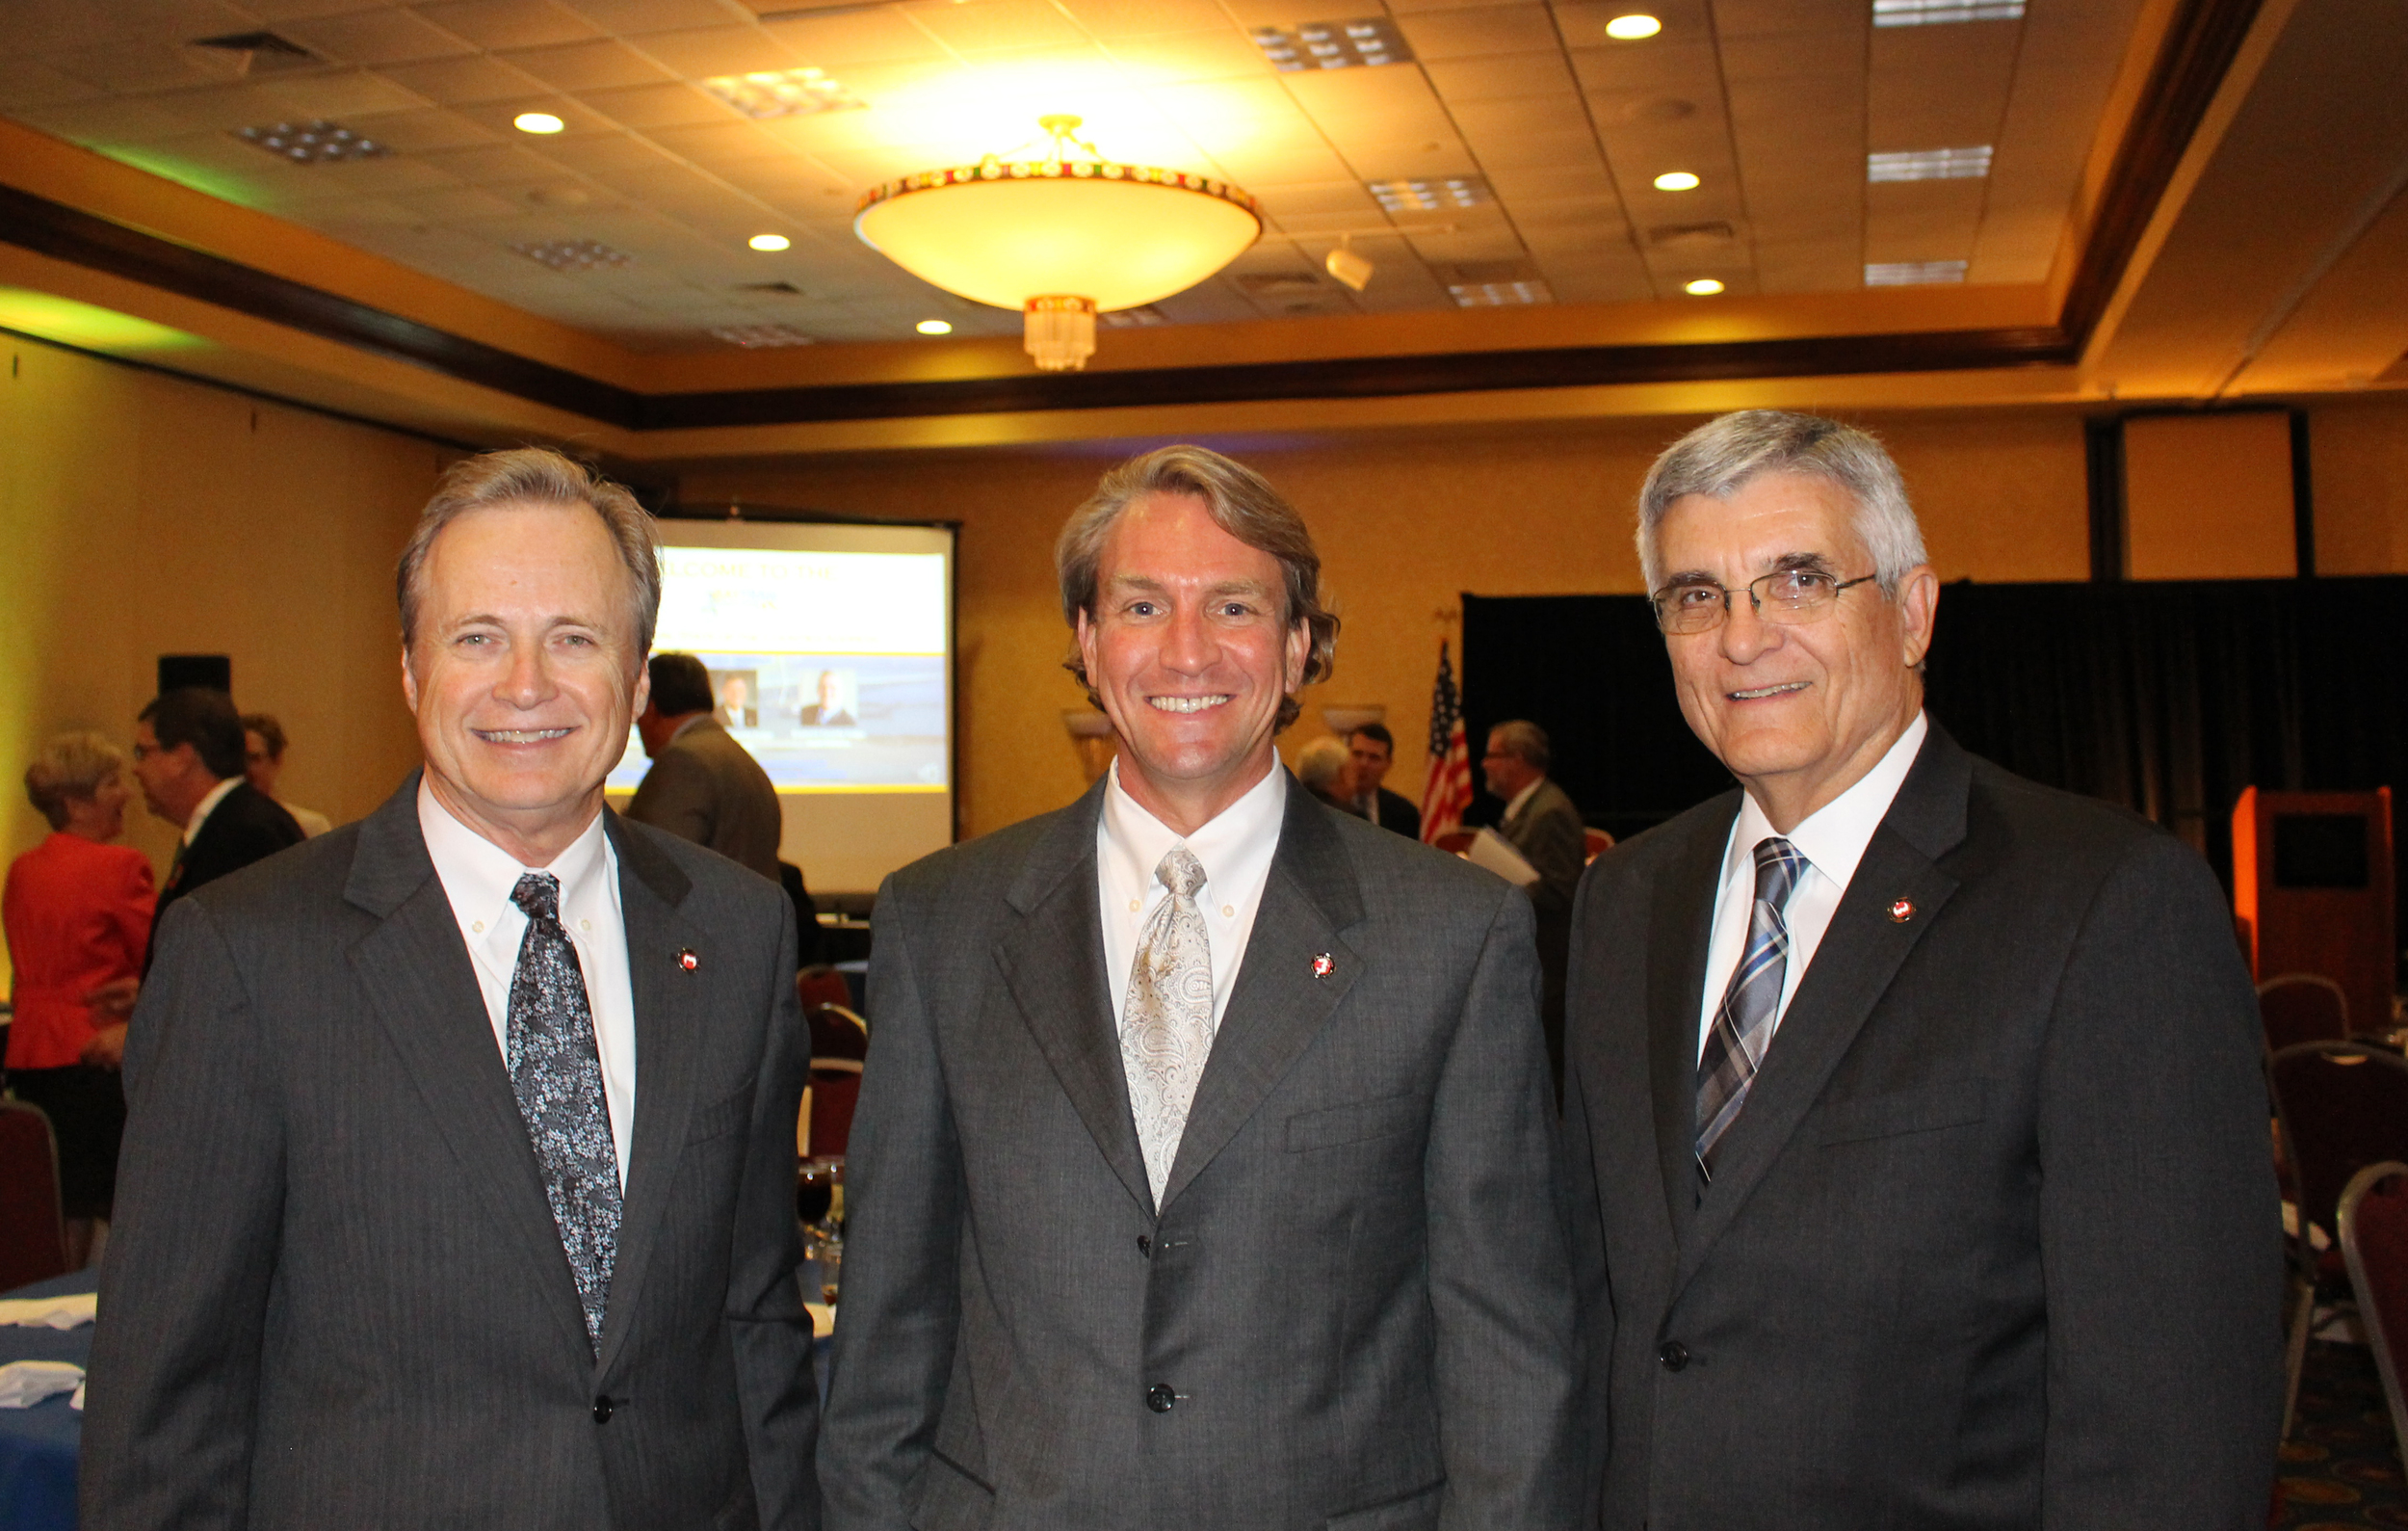 Baytran State of the Counties Lunch 05-12-16 312.JPG